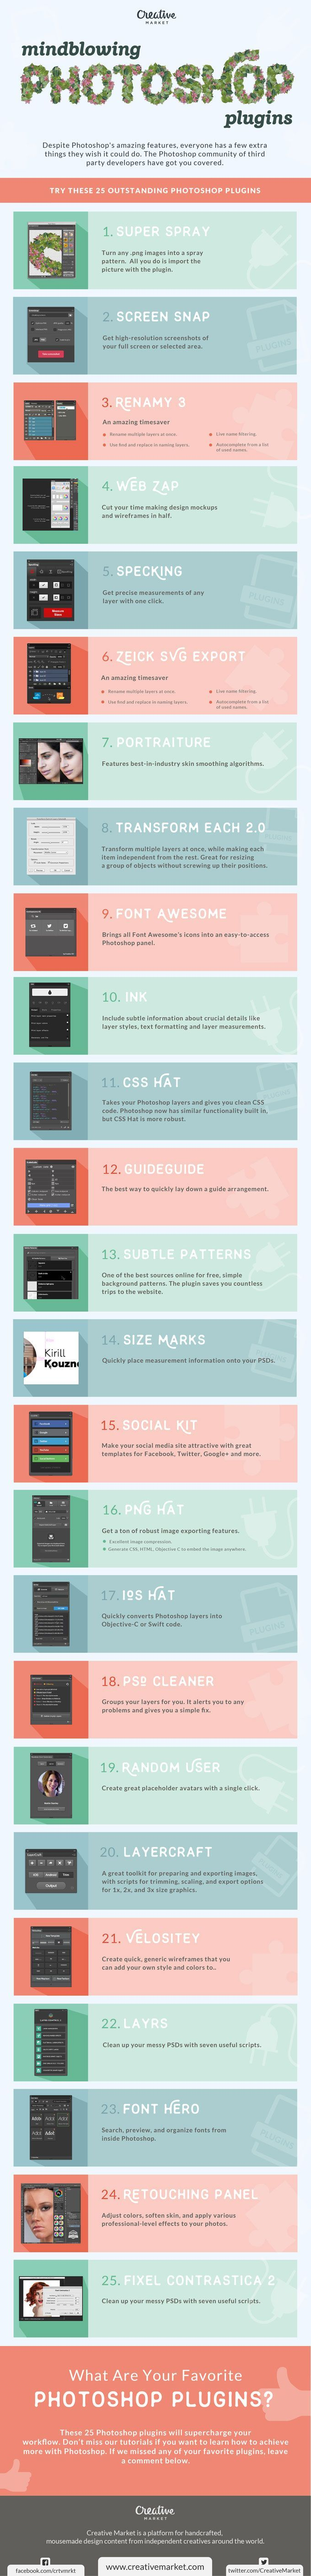 Business infographic : Photoshop has a rich community of third party developers who are regularly churn